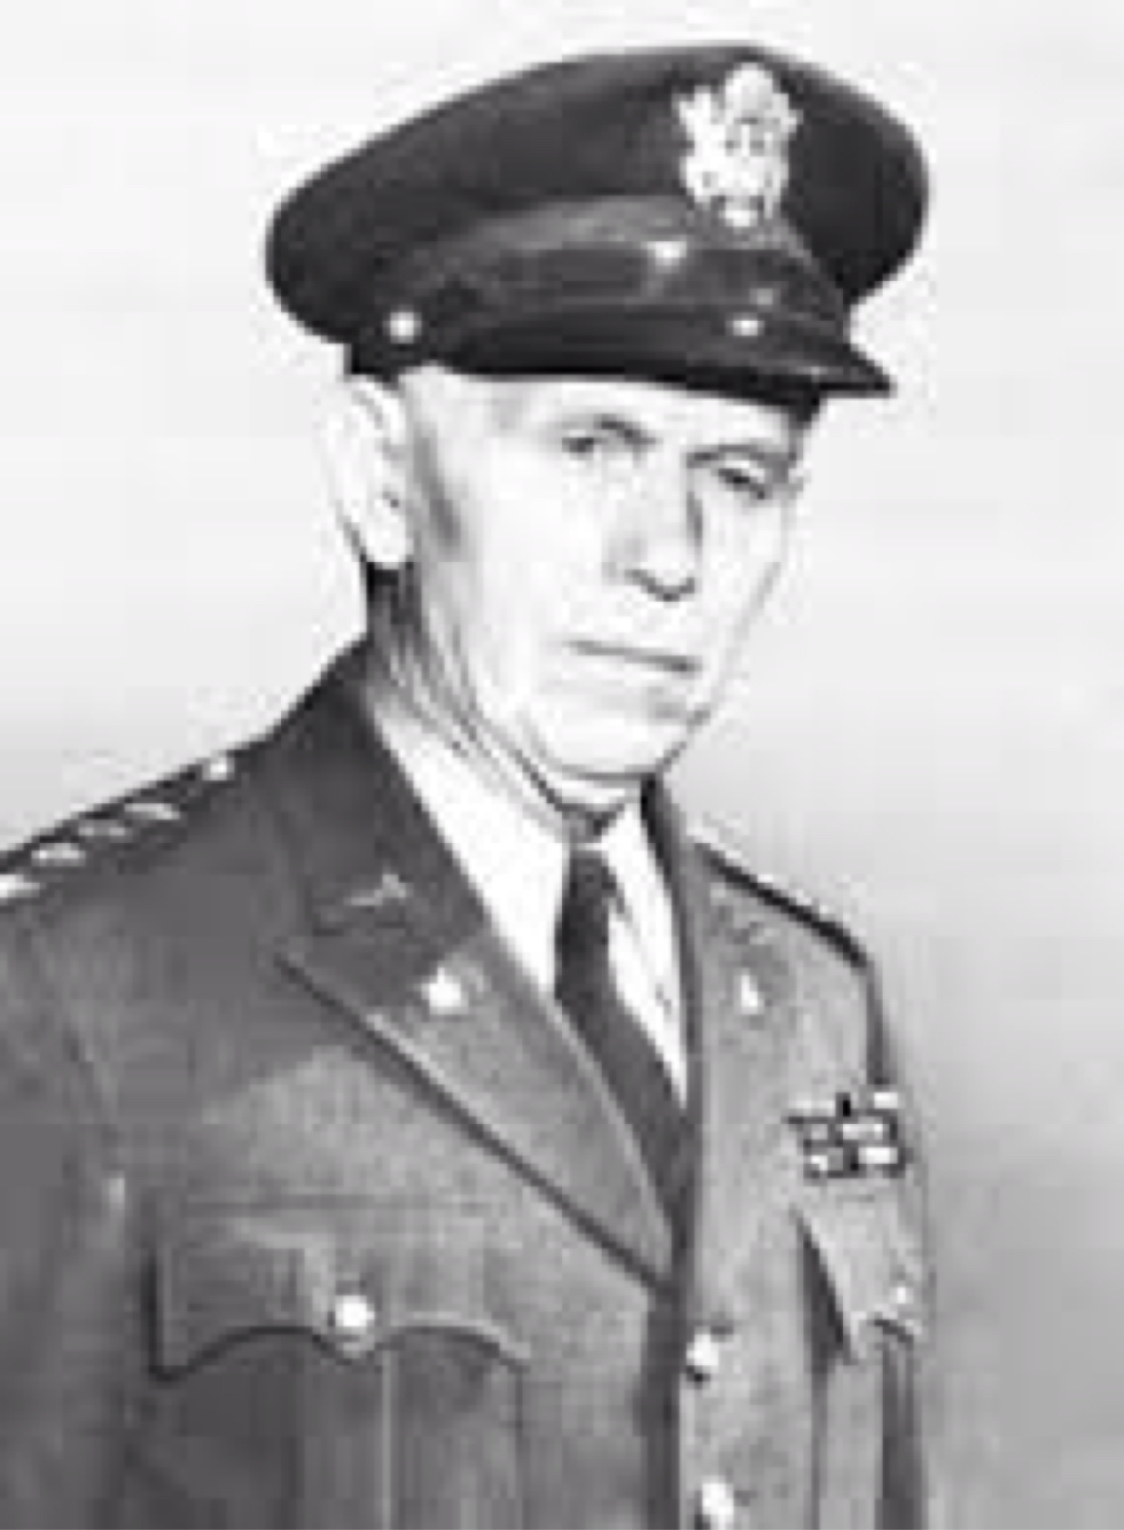 General george c marshall quotes - General George C Marshall Quotes 56